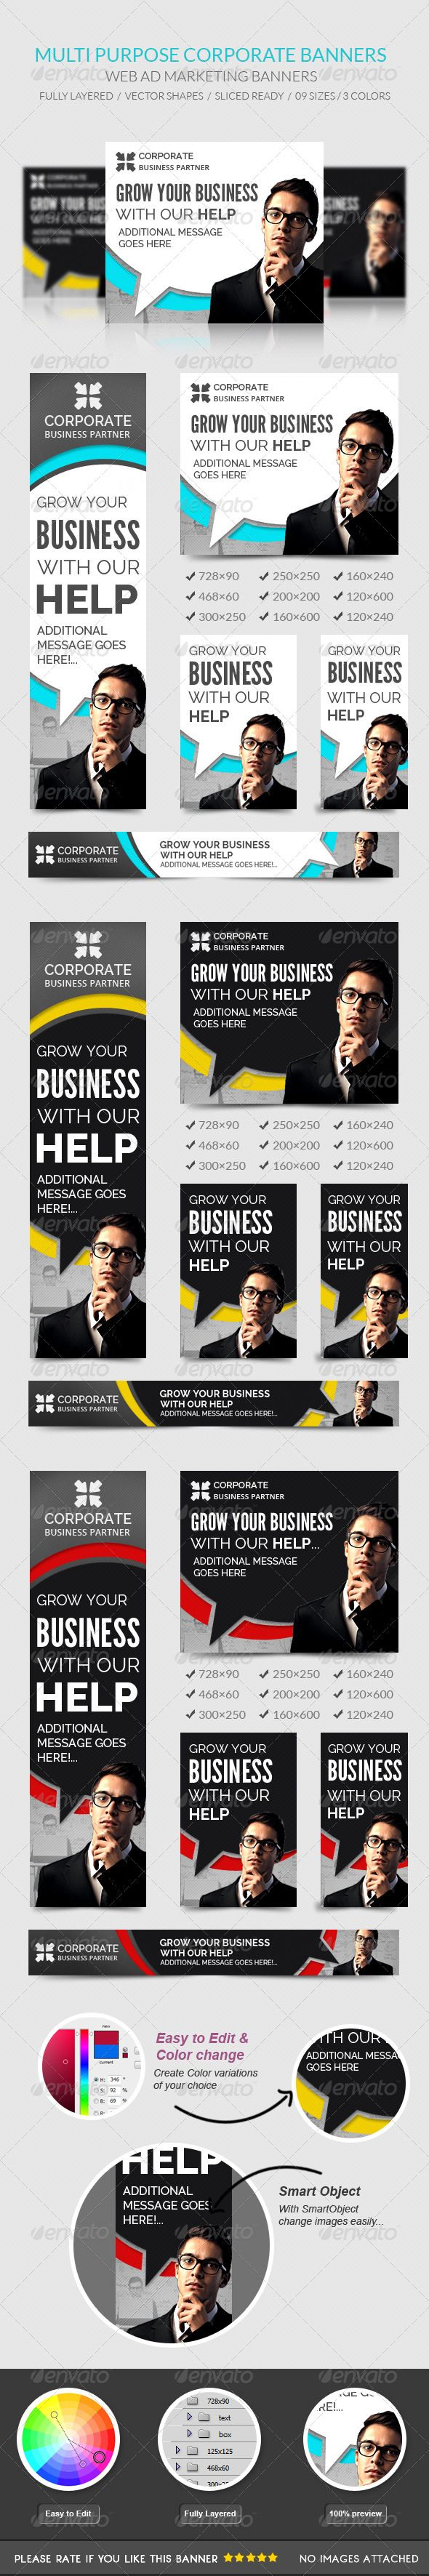 Corporate Web Banners Template PSD   Buy and Download: http://graphicriver.net/item/corporate-banners/7981256?WT.ac=category_thumb&WT.z_author=msrashdi&ref=ksioks